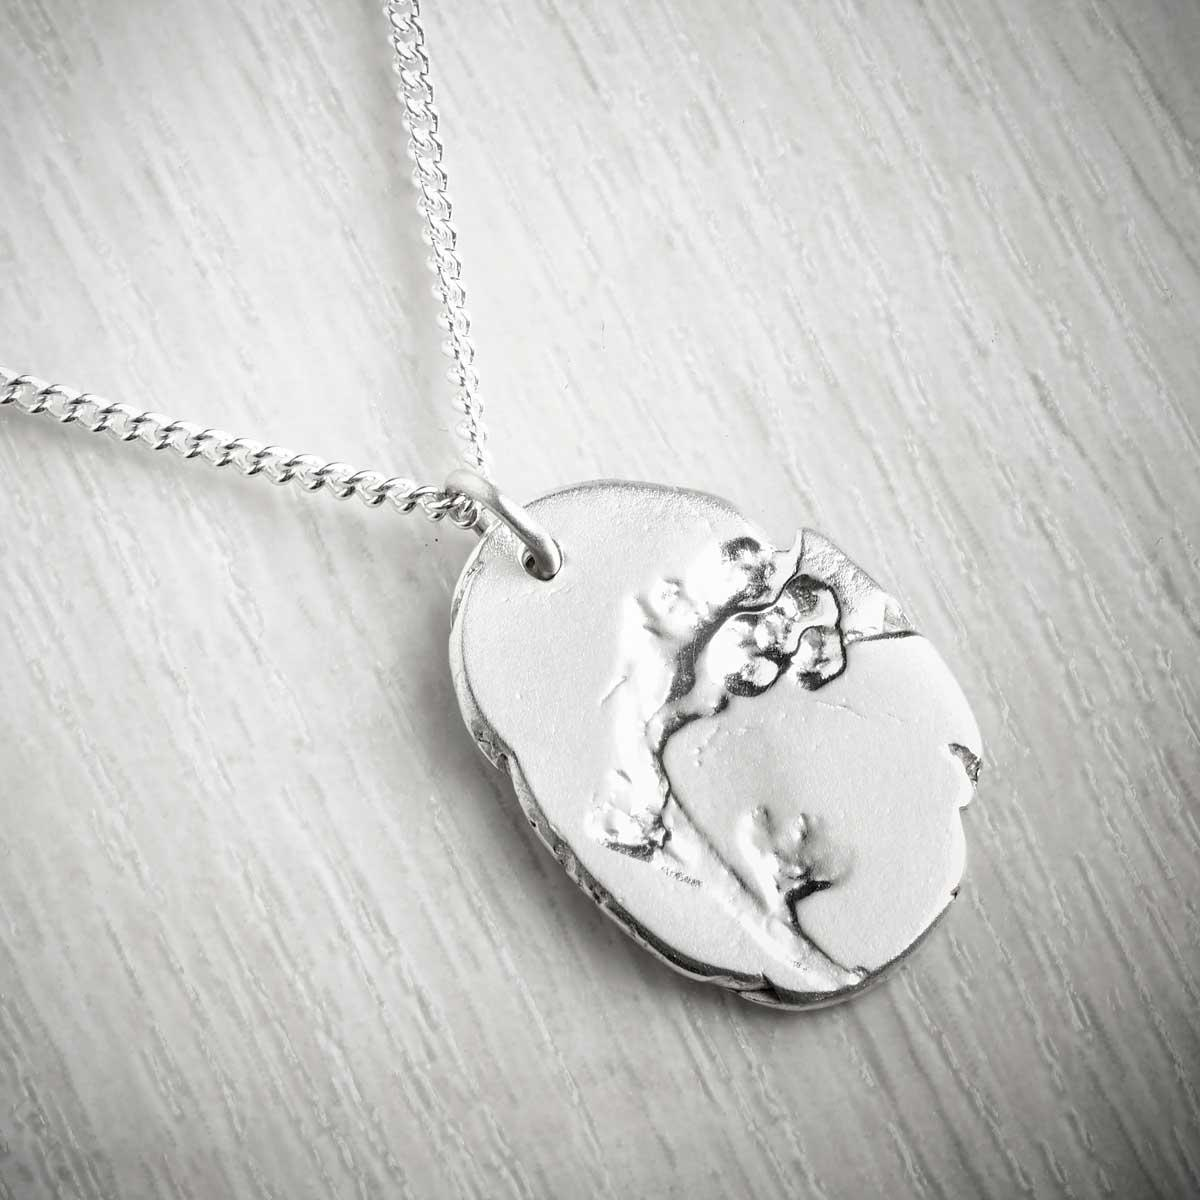 Forget-me-not September Fossil Pendant by Becca Macdonald. Image property of THE JEWELLERY MAKERS